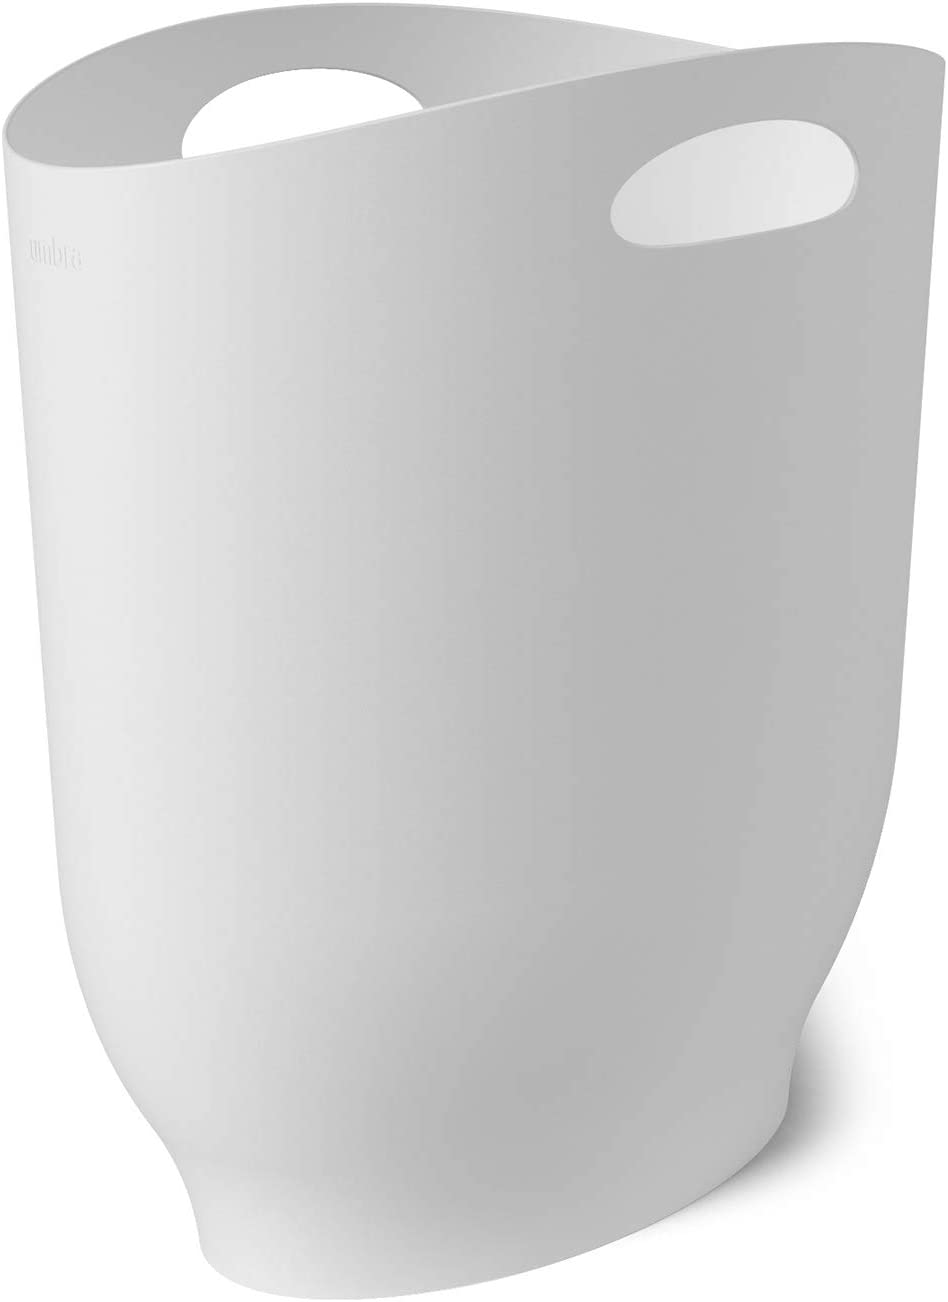 Umbra Harlo, 2.4 Gallon, White Sleek & Stylish Bathroom Trash Can, Small Garbage Bin Wastebasket for Narrow Spaces at Home or Office, 2-1/2 Gallon Capacity, 2.3